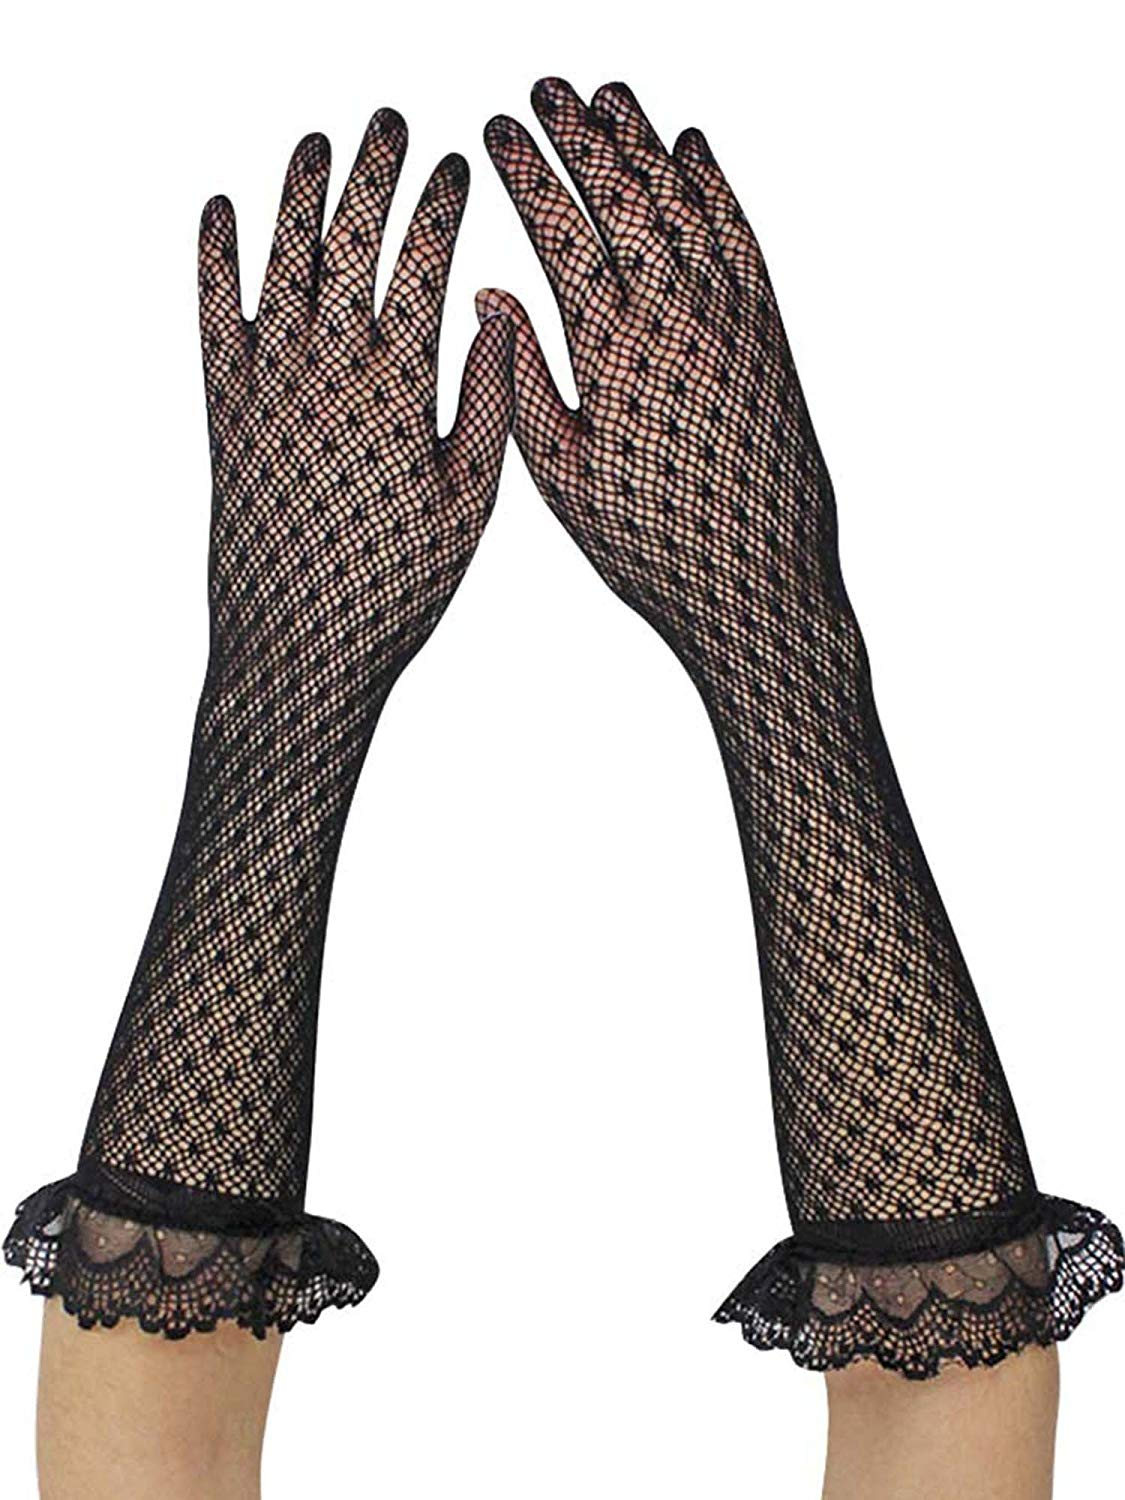 c3abcb282 Cheap Womens Lace Gloves, find Womens Lace Gloves deals on line at ...